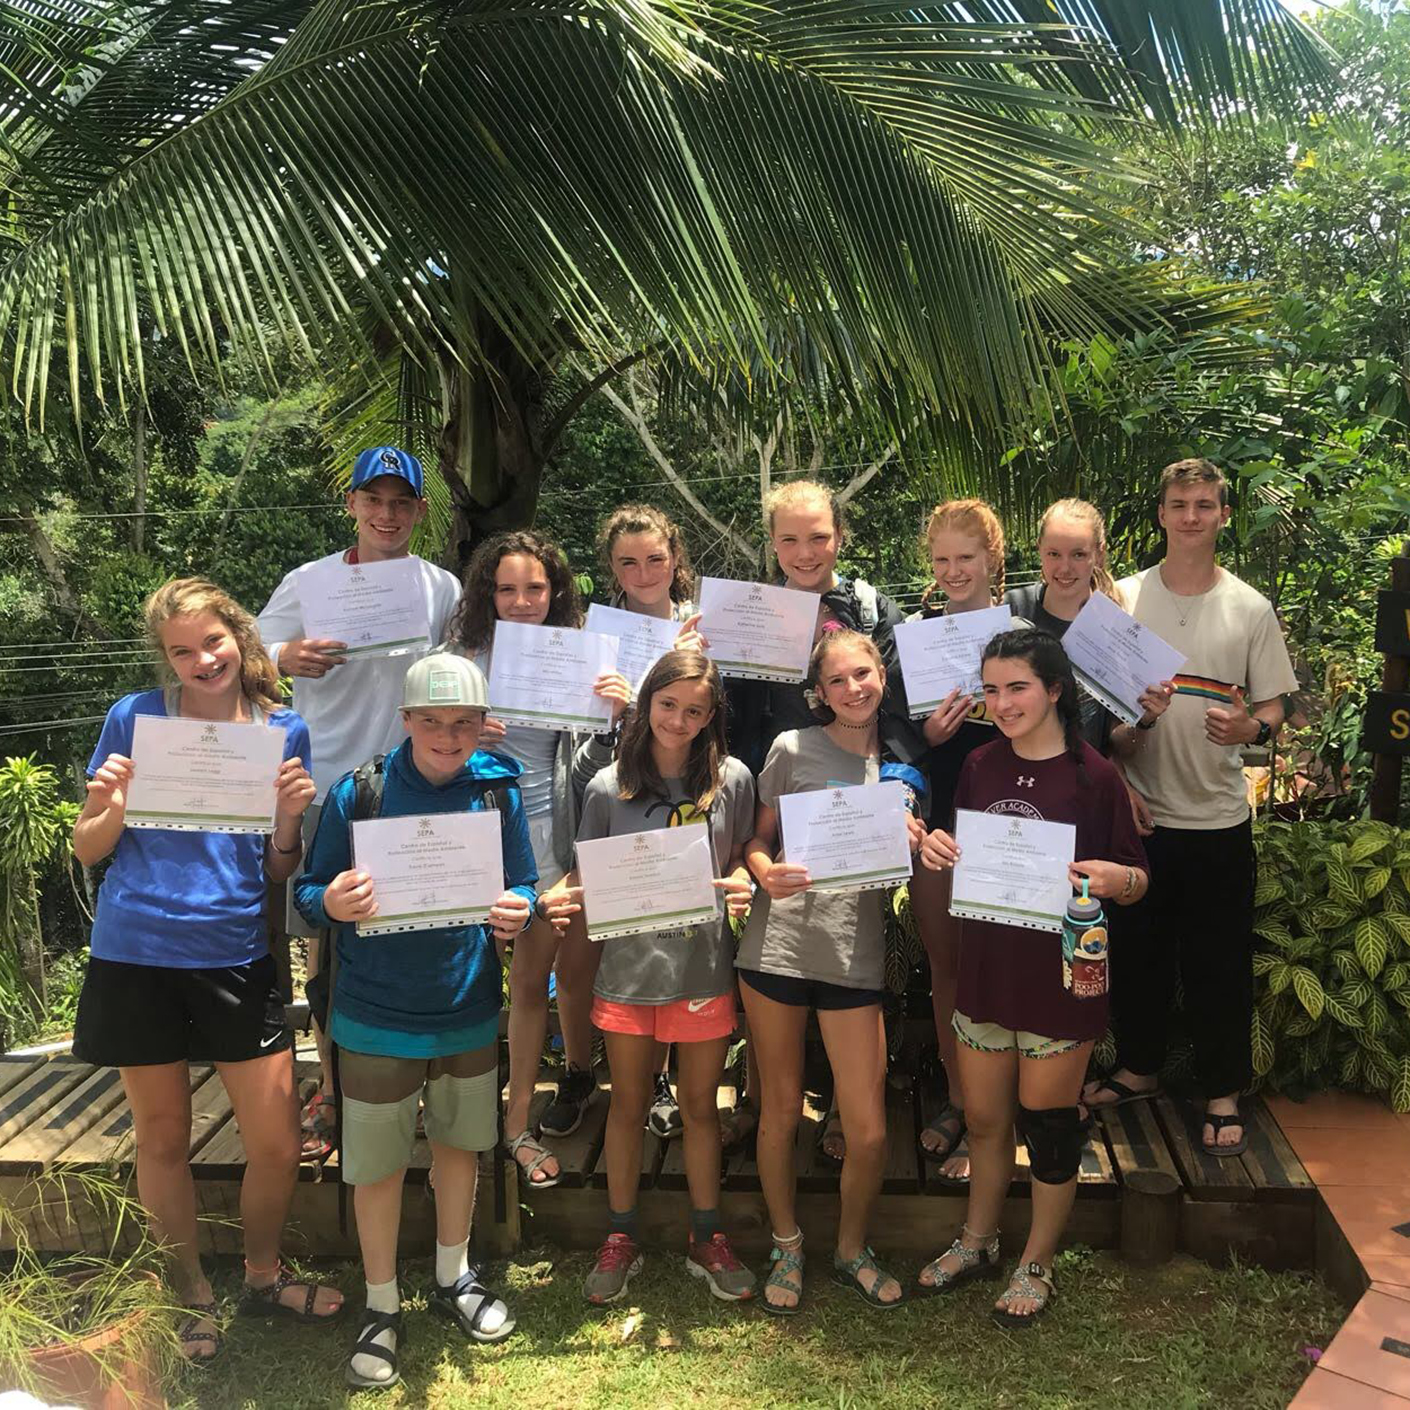 Group photo on the Costa Rica Pura Vida trip